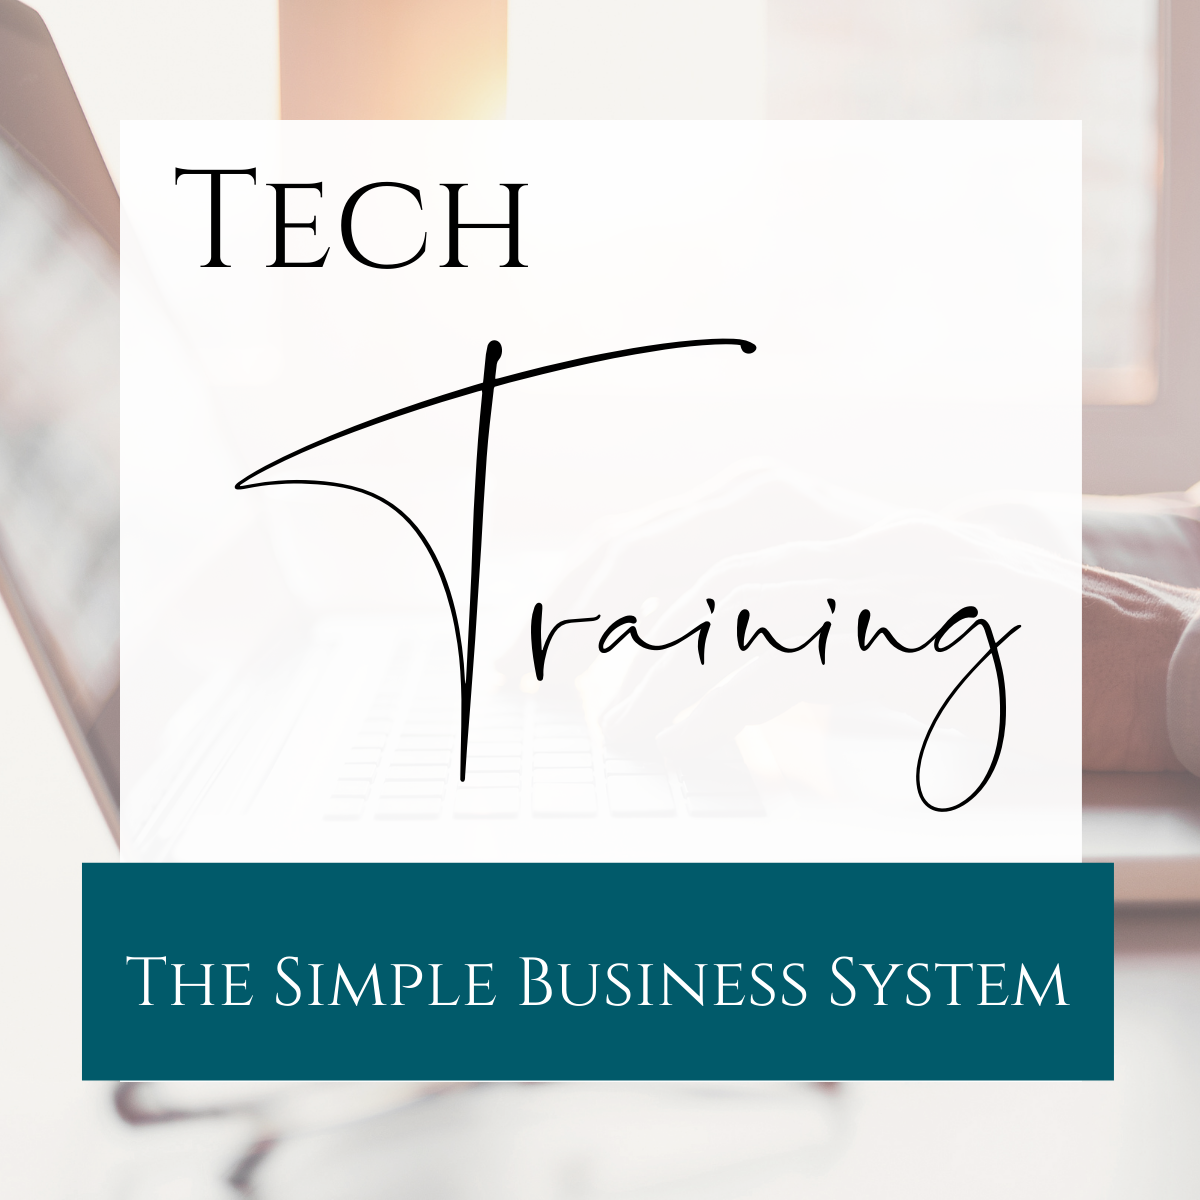 The Simple Business System